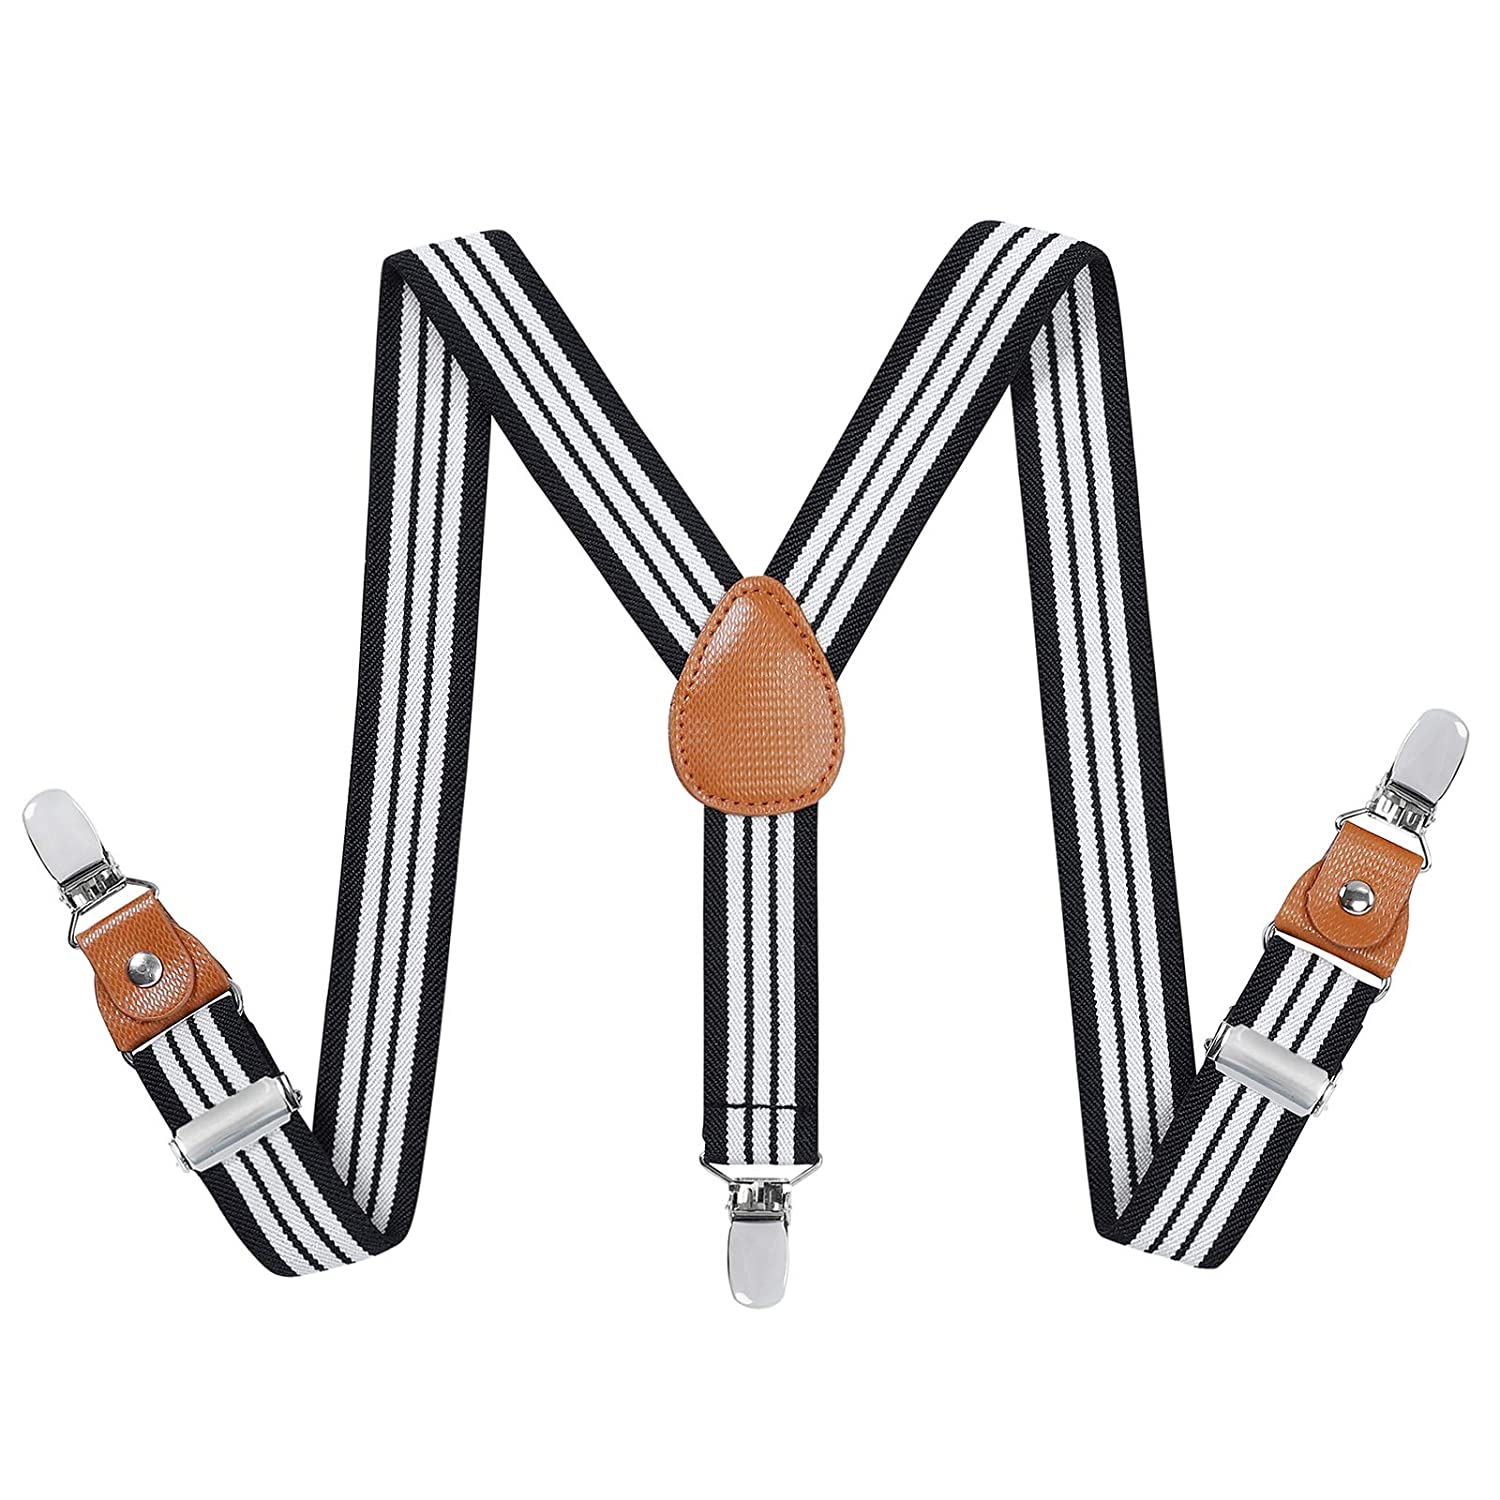 Toddler Boys Mens Elastic Suspenders - Y Back Adjustable Strong Clip Synthetic Suspenders (Brown, 43.3 Inch (Adults Size)) Jerrybaby